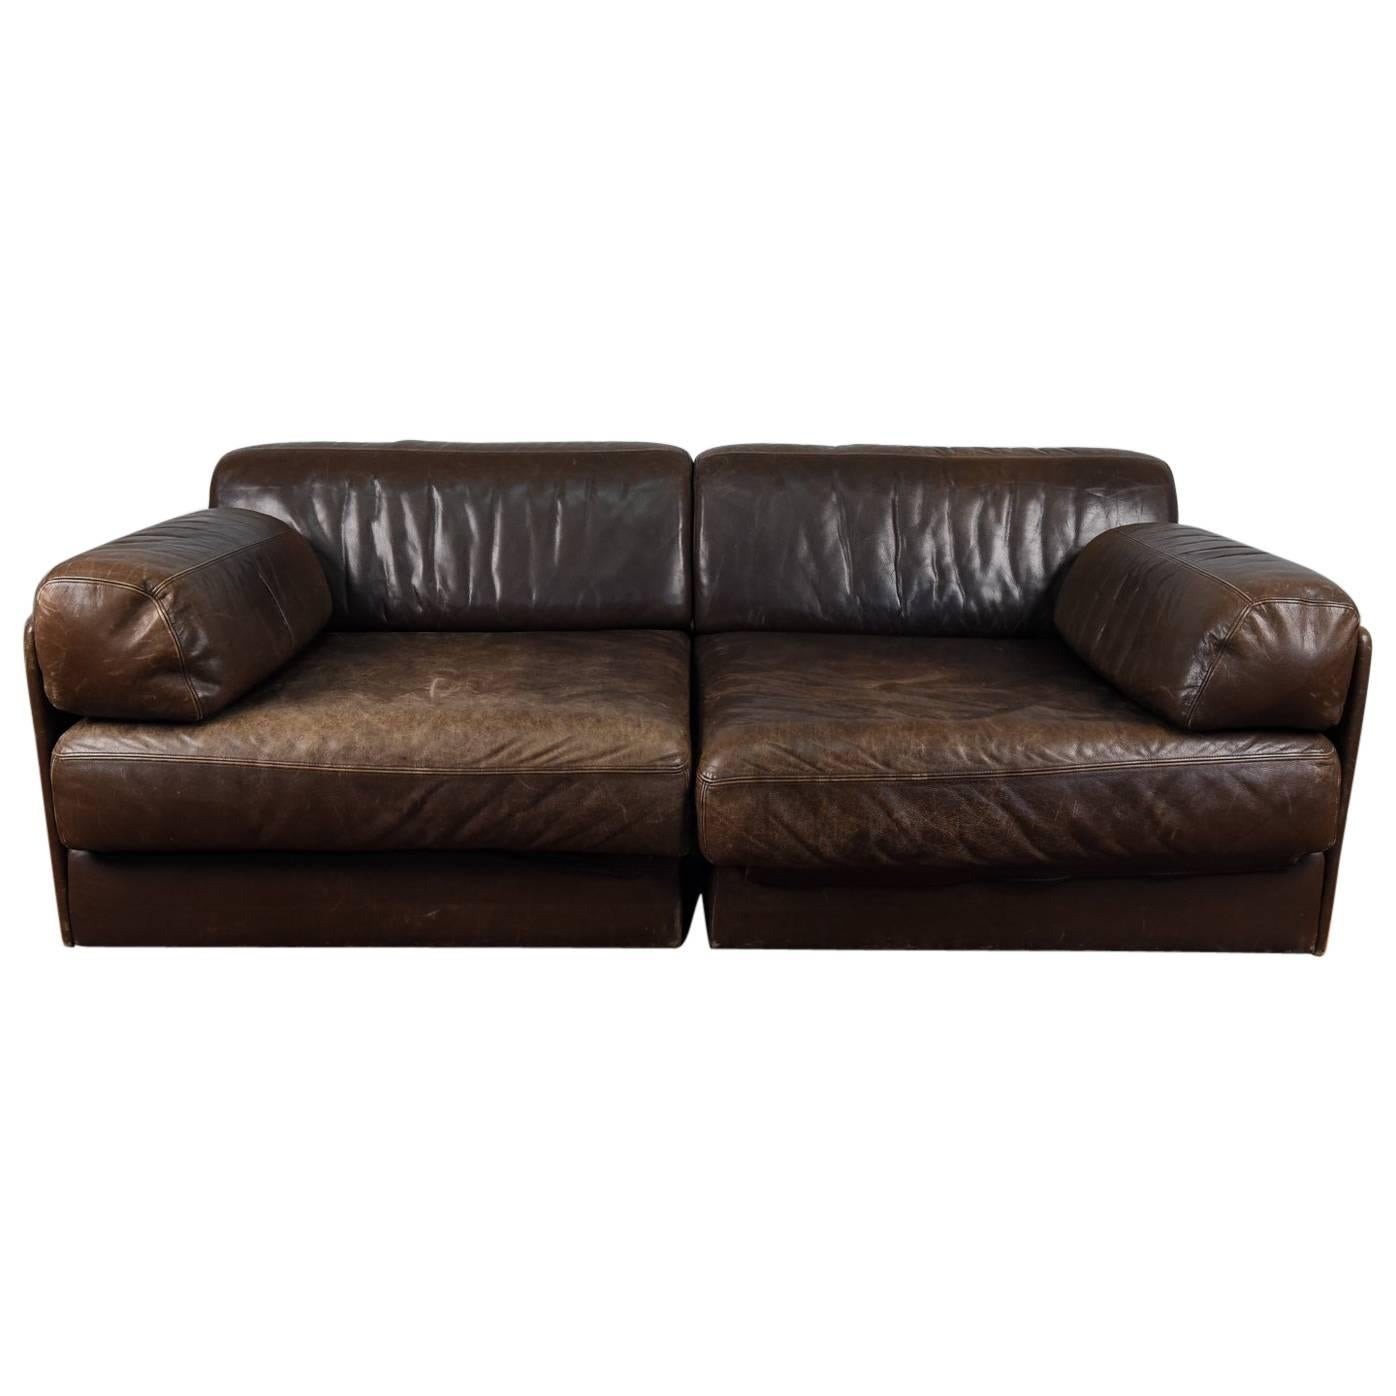 Modul Sofa eseat Lounge Chair With Modul Sofa Simple Happen With